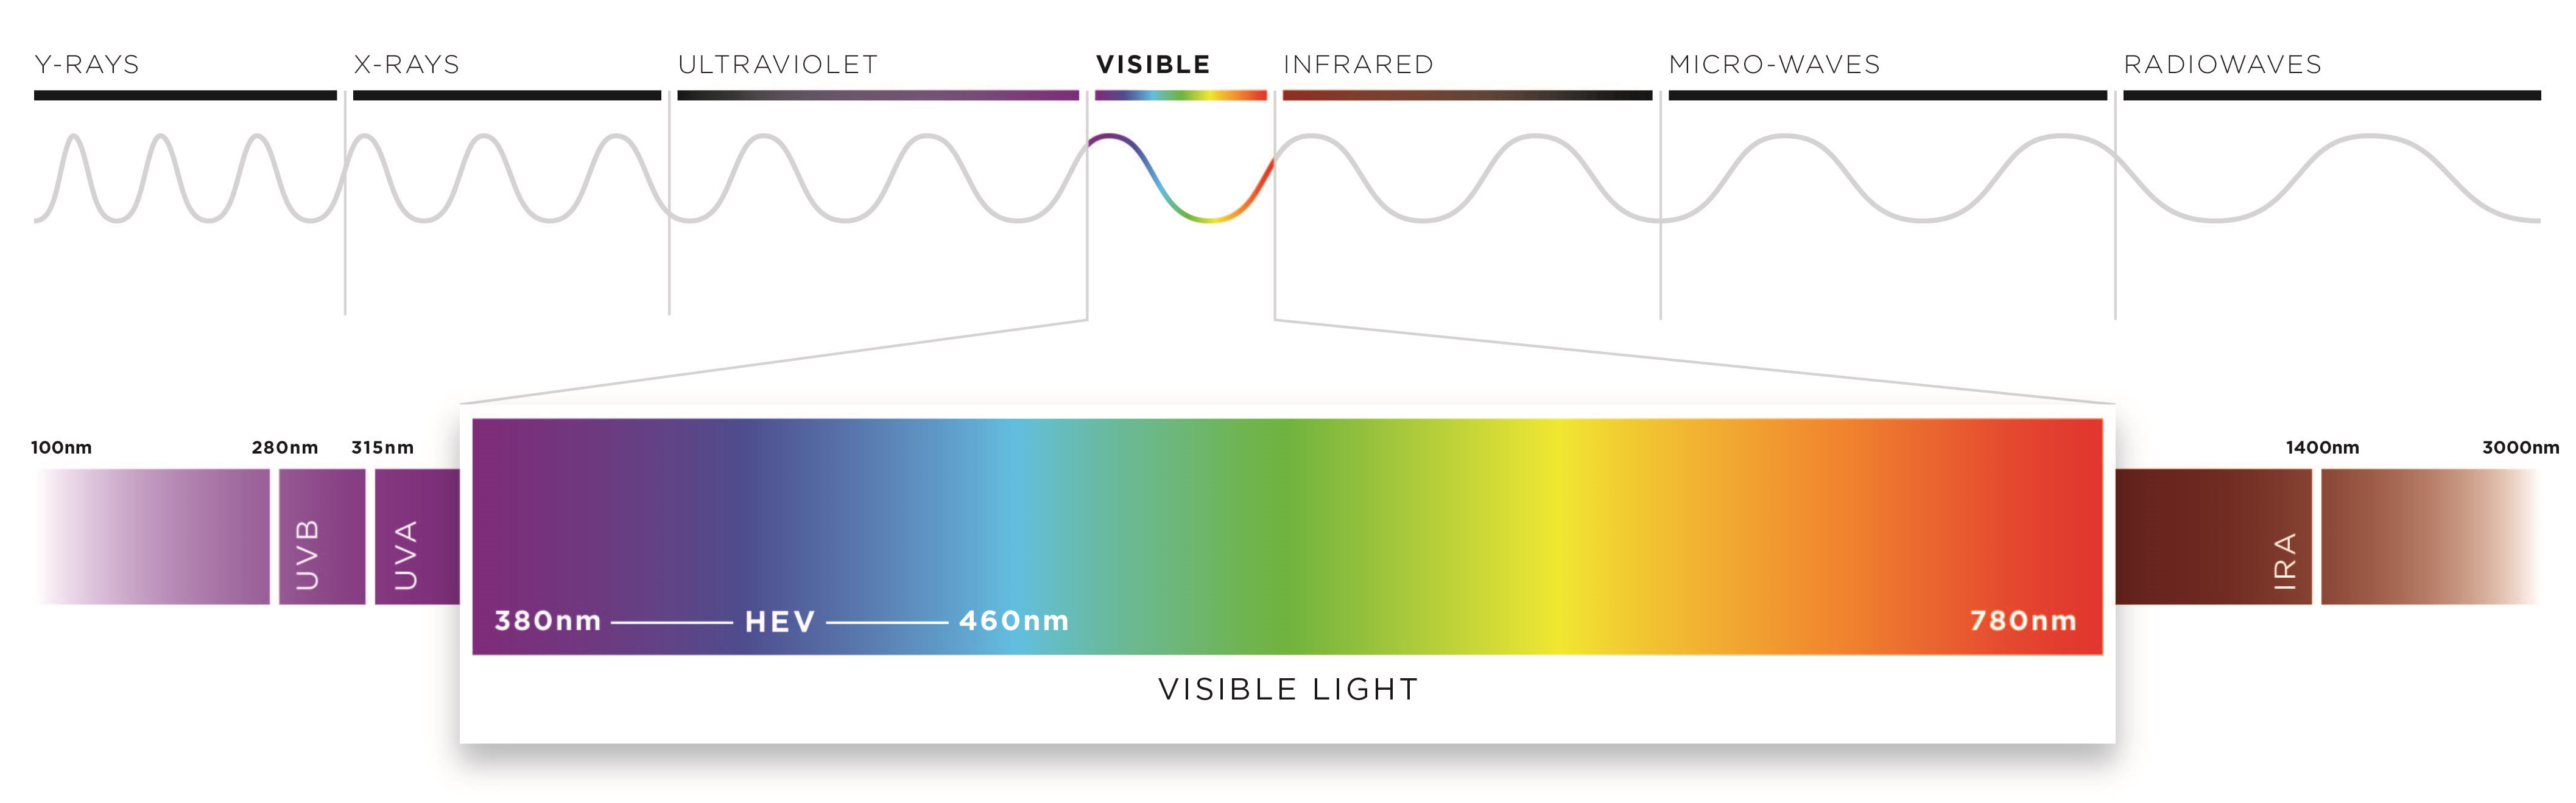 Electromagnetic radiation and the visible spectrum